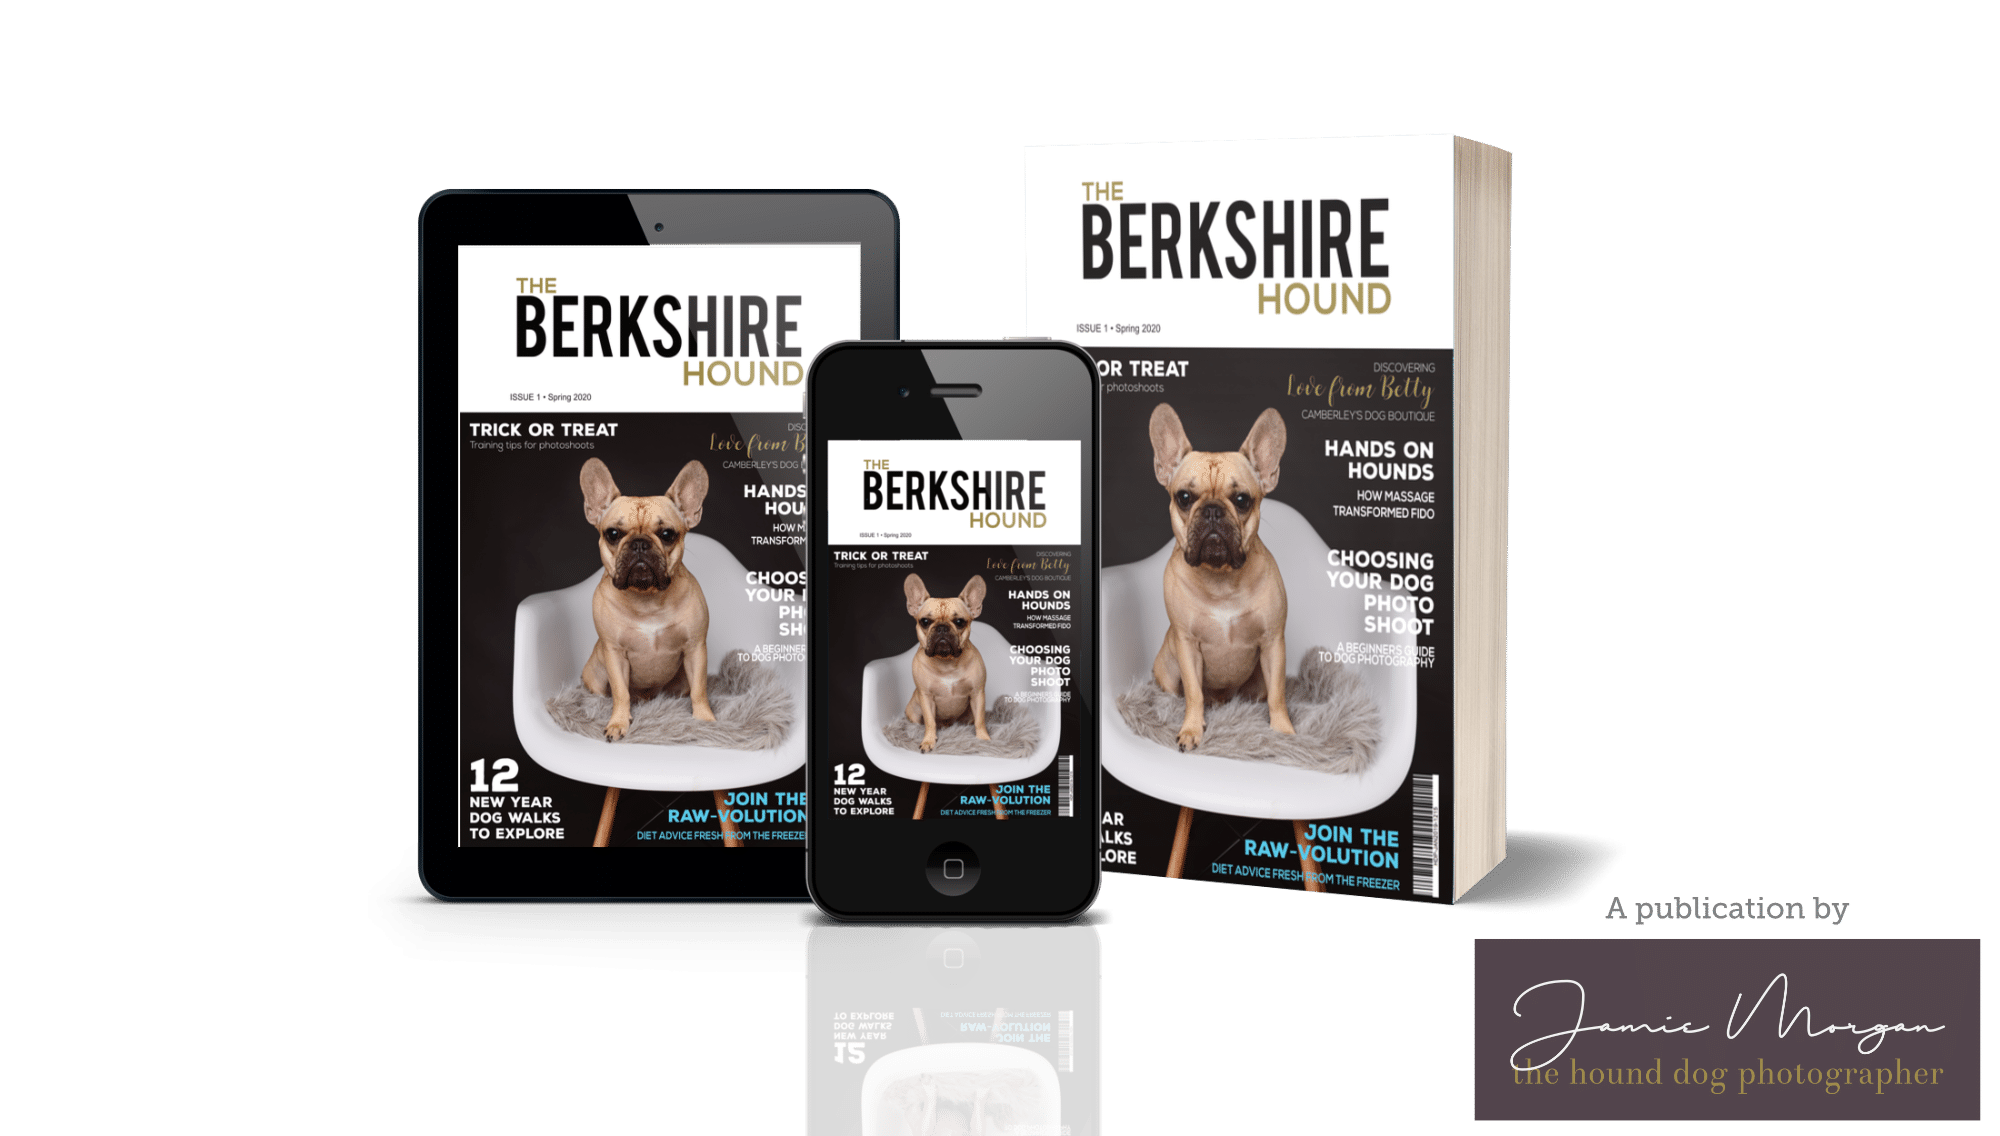 The Berkshire Hound Magazine